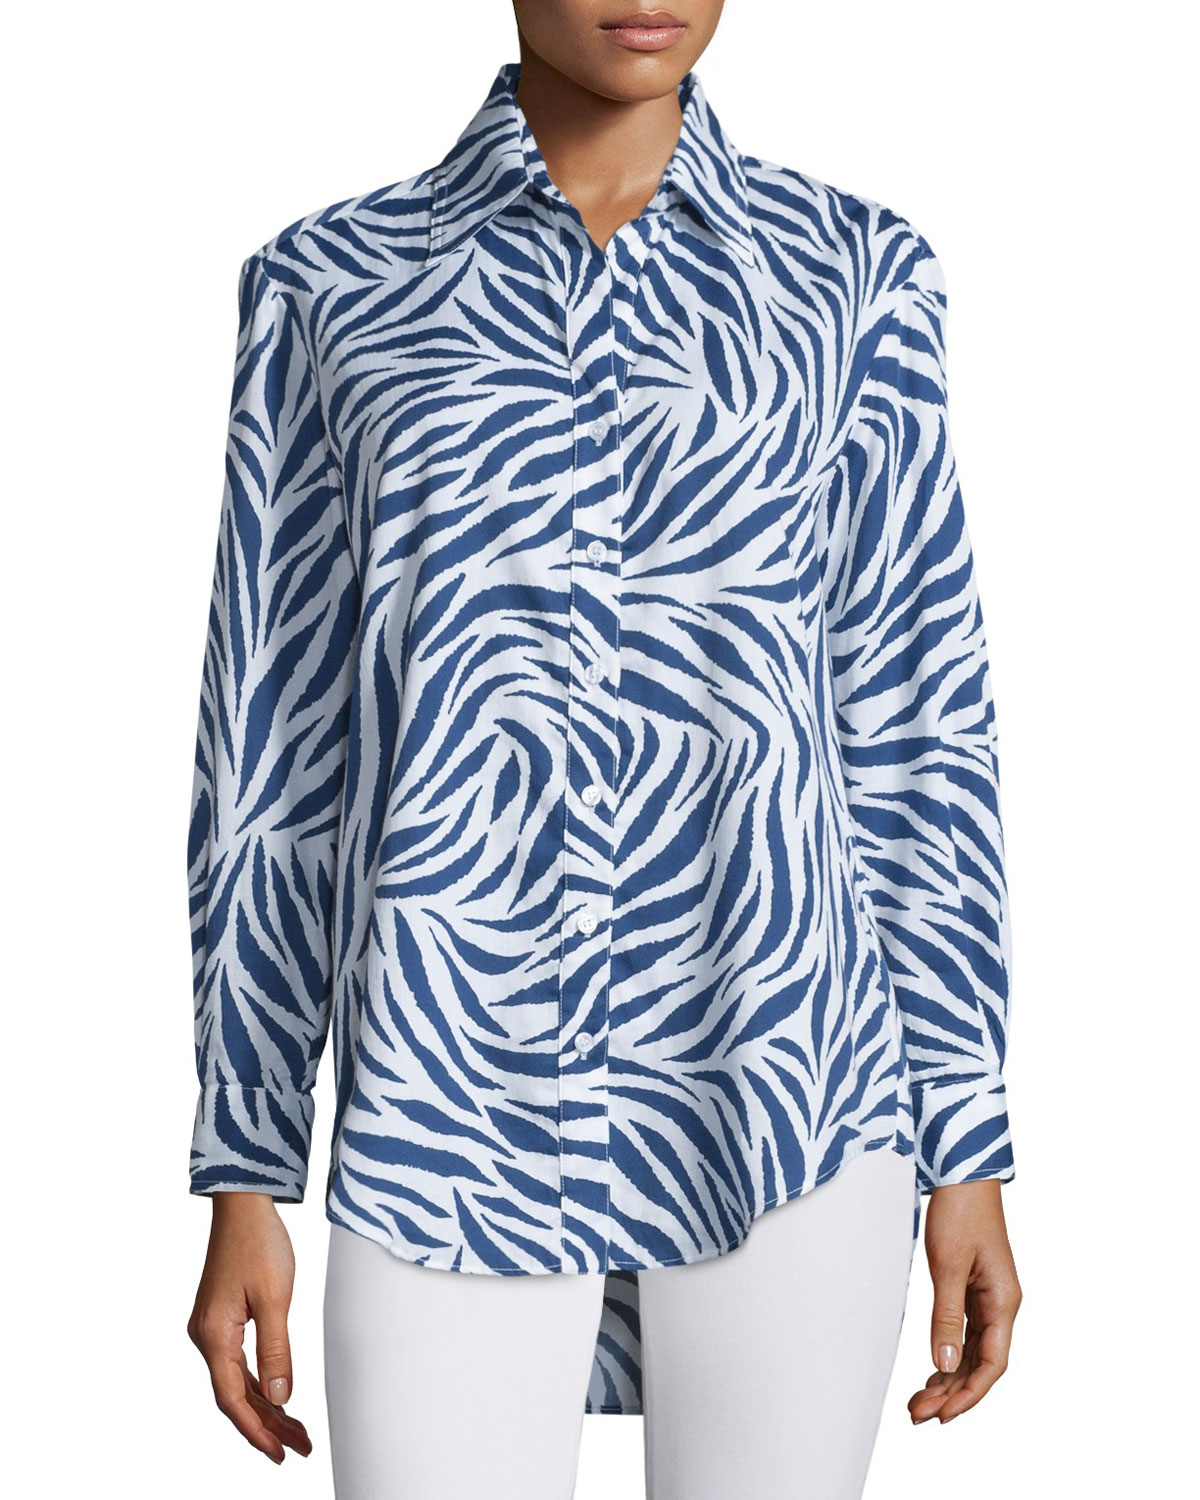 Monica Zebra Print Sateen Blouse, Navy/White, Plus Size